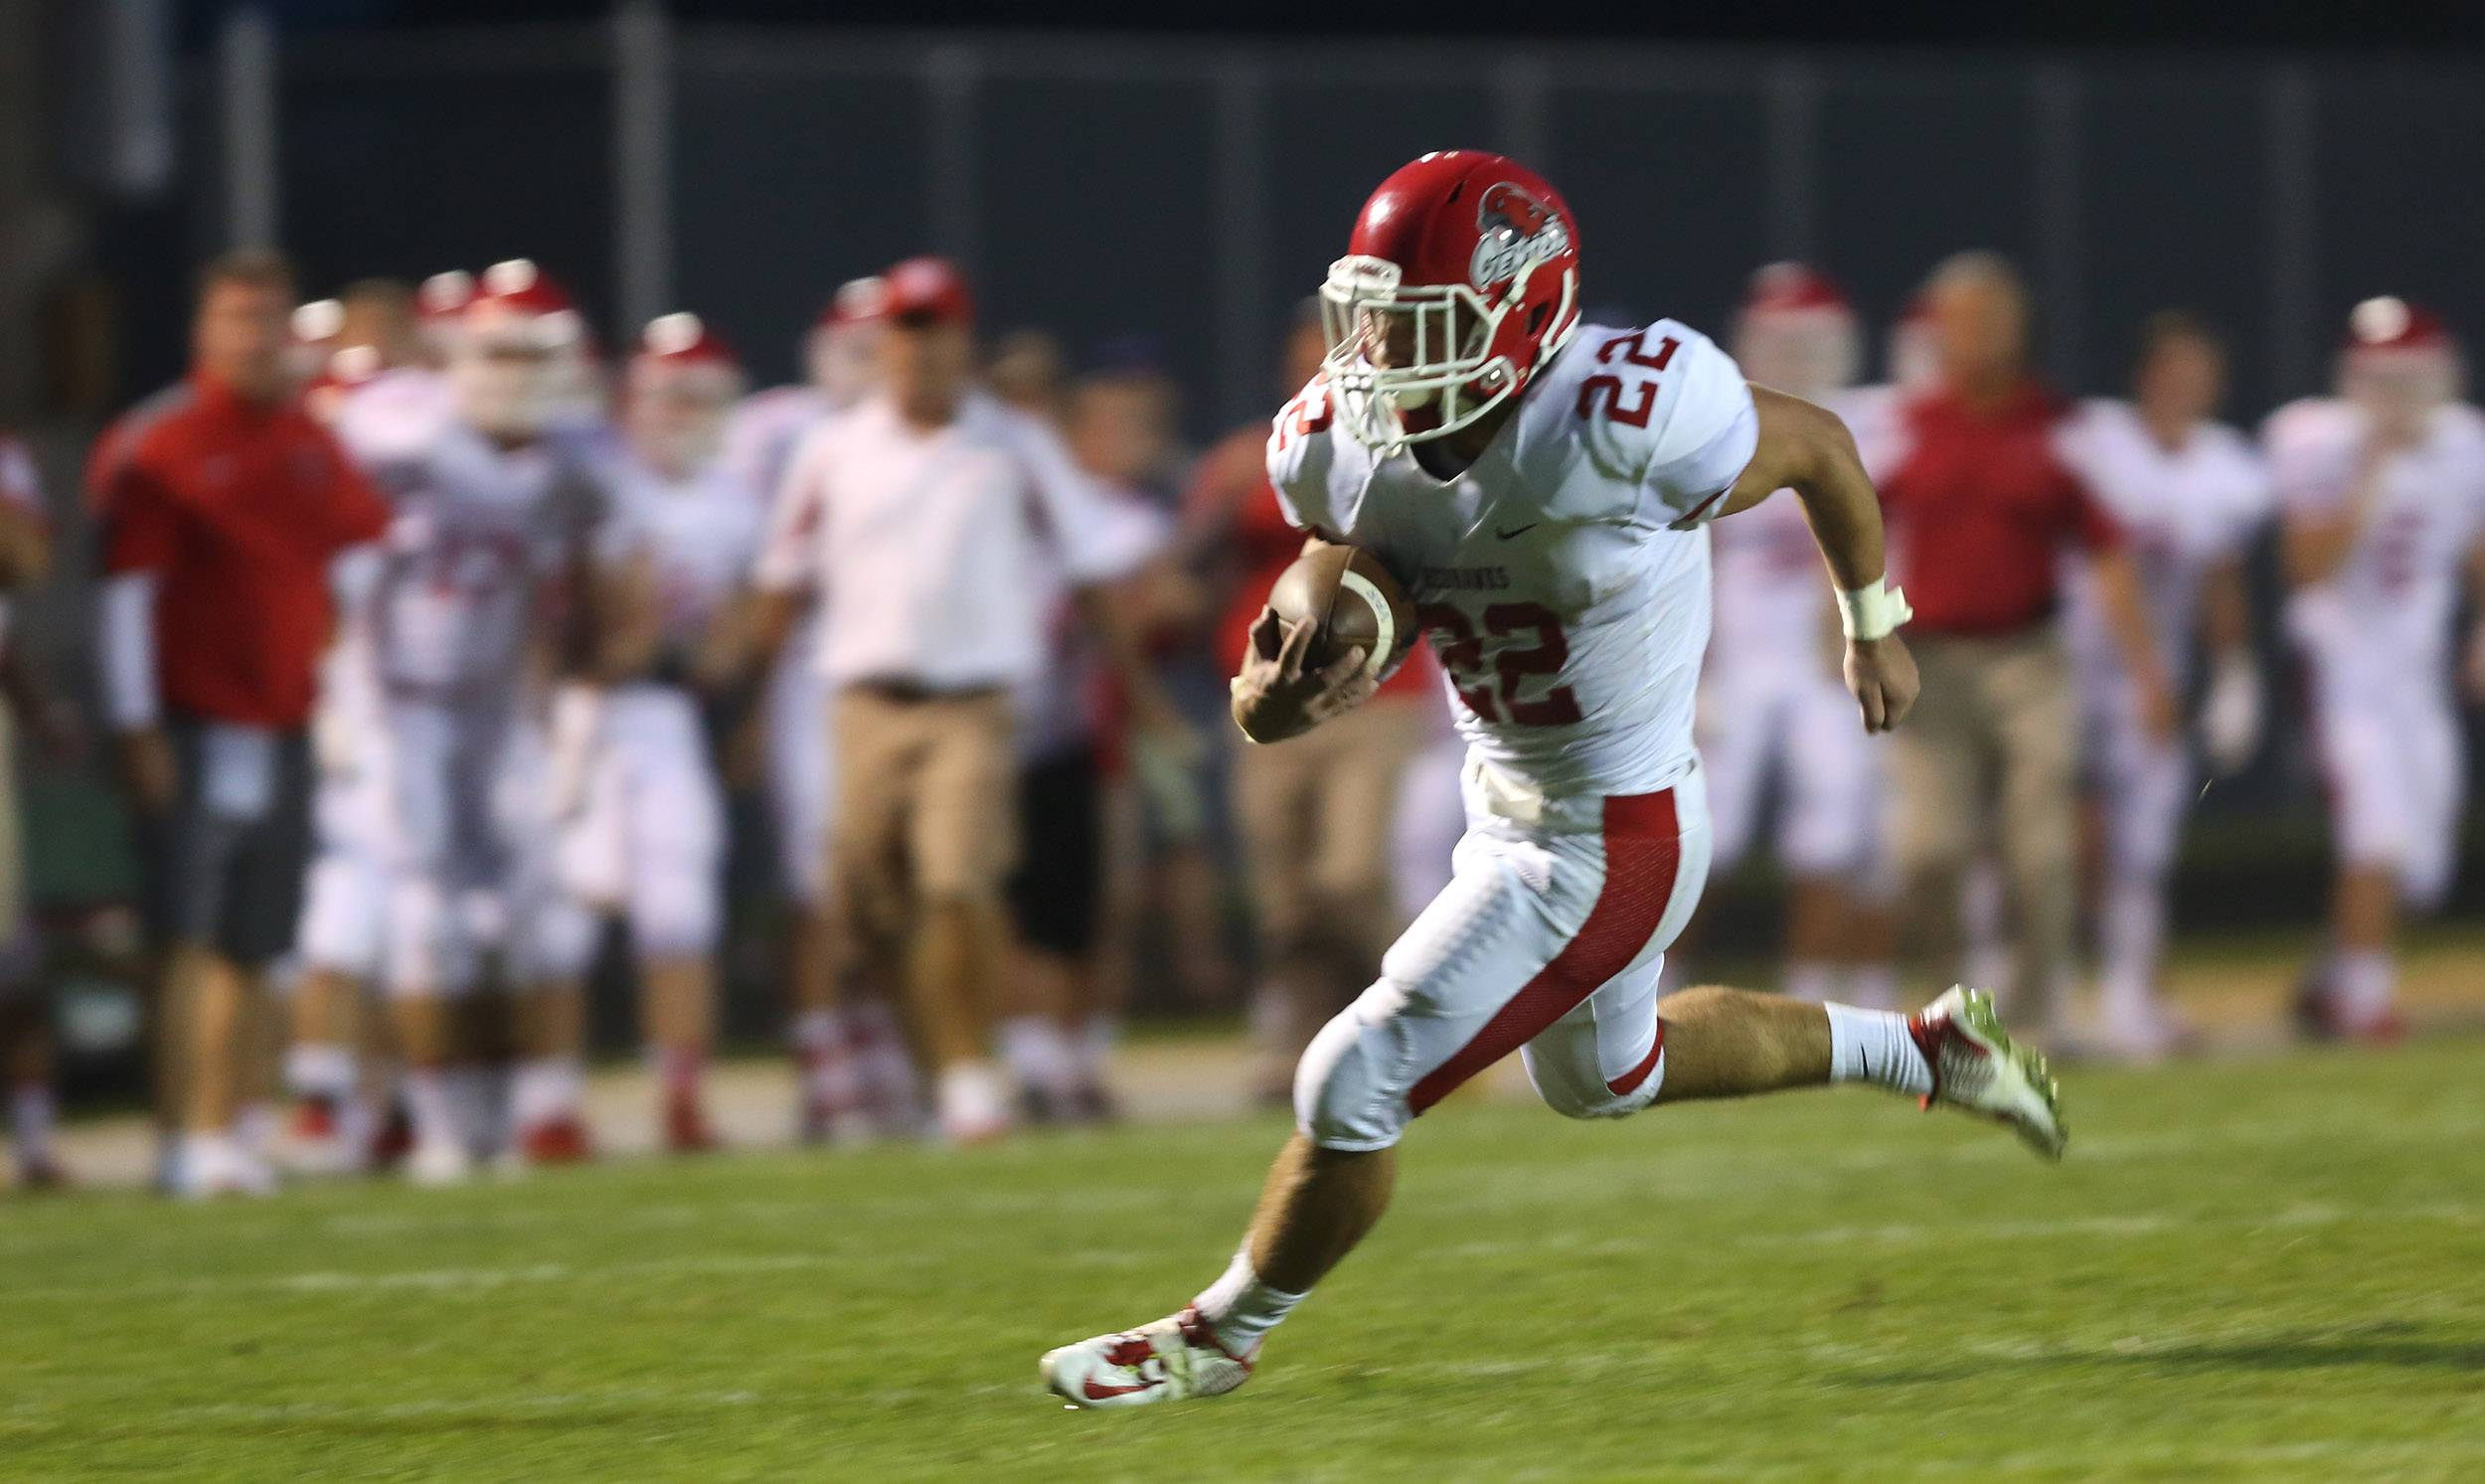 Naperville Central's Kevin Clifford sprints to the two-yard line against Waubonsie Valley.